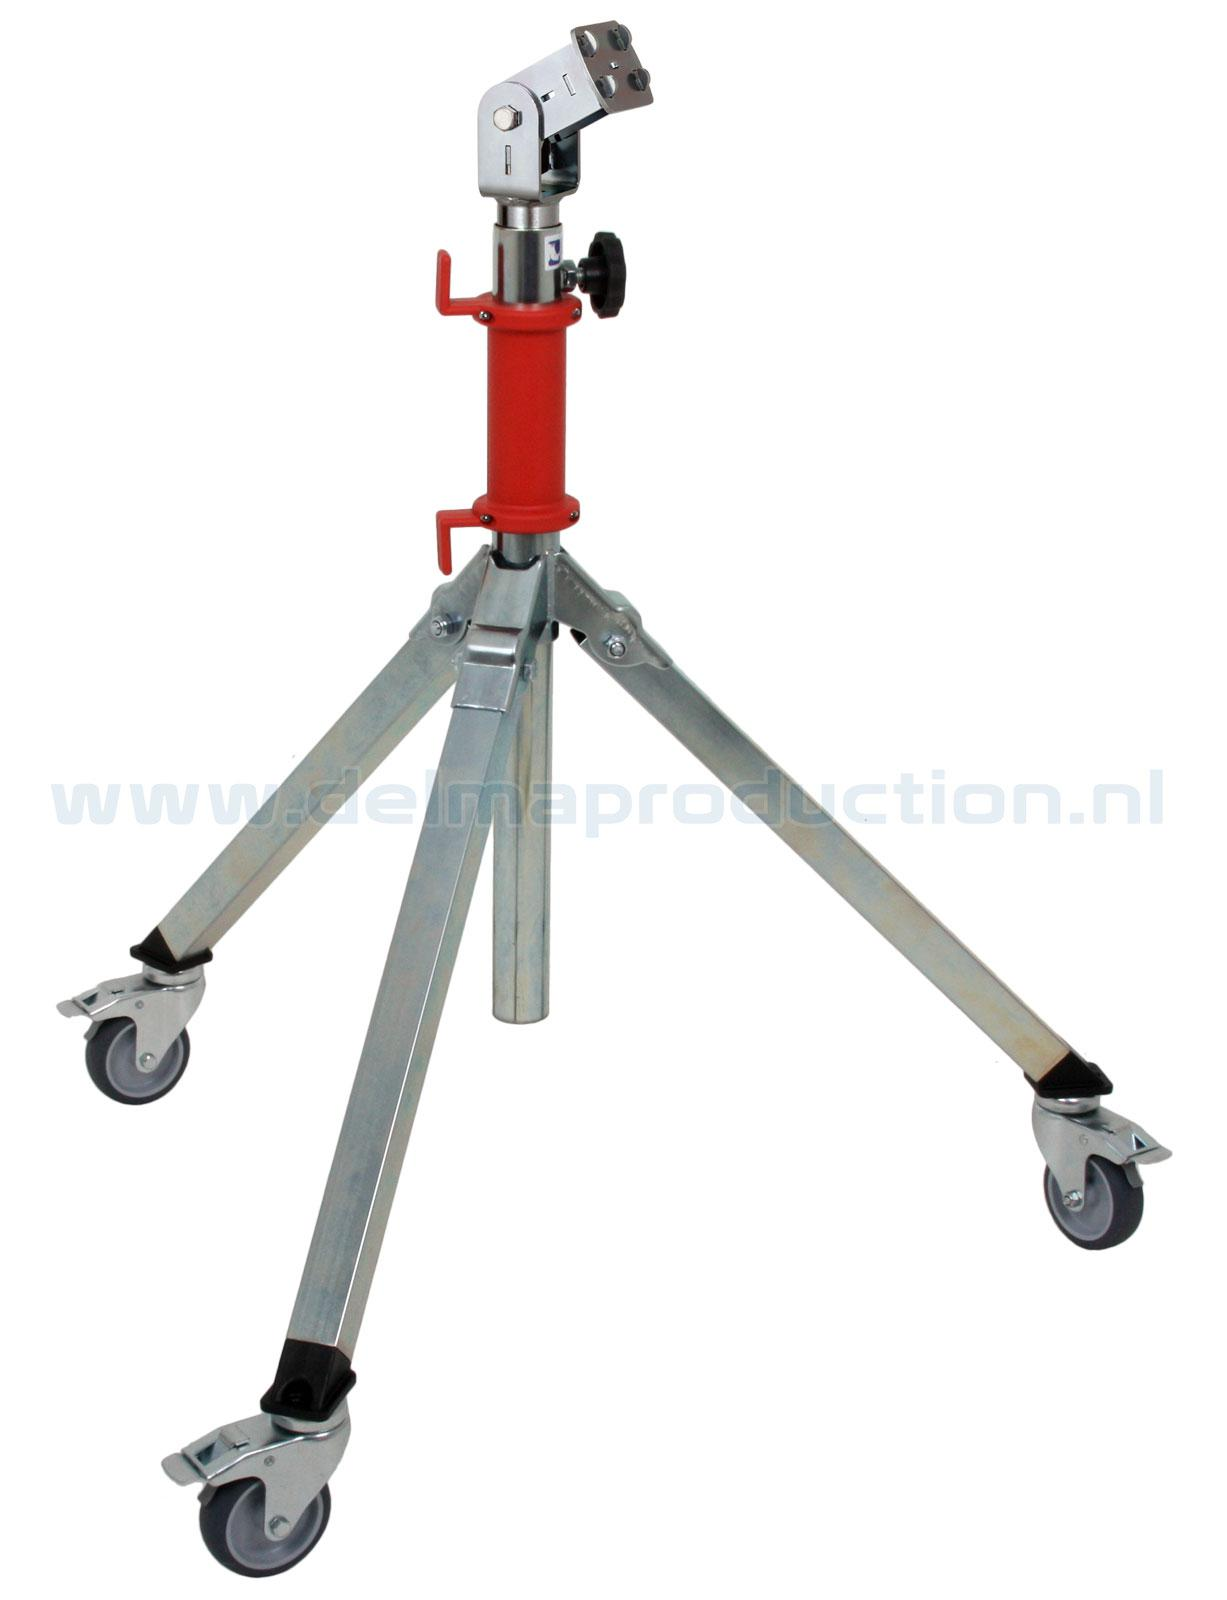 Tripod worklight stand 2-part Midi, mobile, quick release system